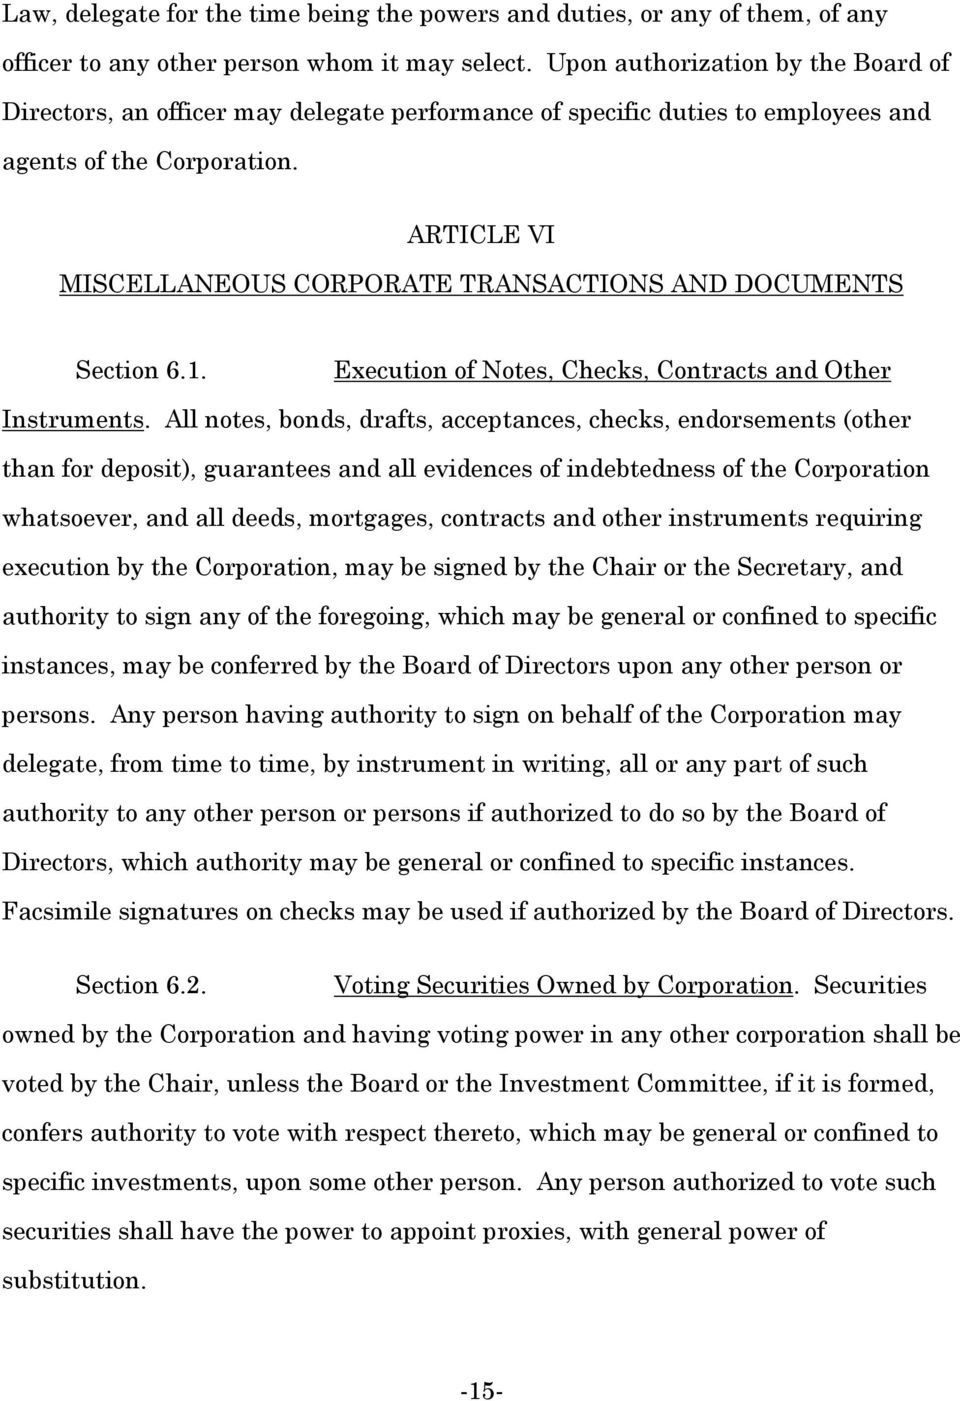 ARTICLE VI MISCELLANEOUS CORPORATE TRANSACTIONS AND DOCUMENTS Section 6.1. Execution of Notes, Checks, Contracts and Other Instruments.